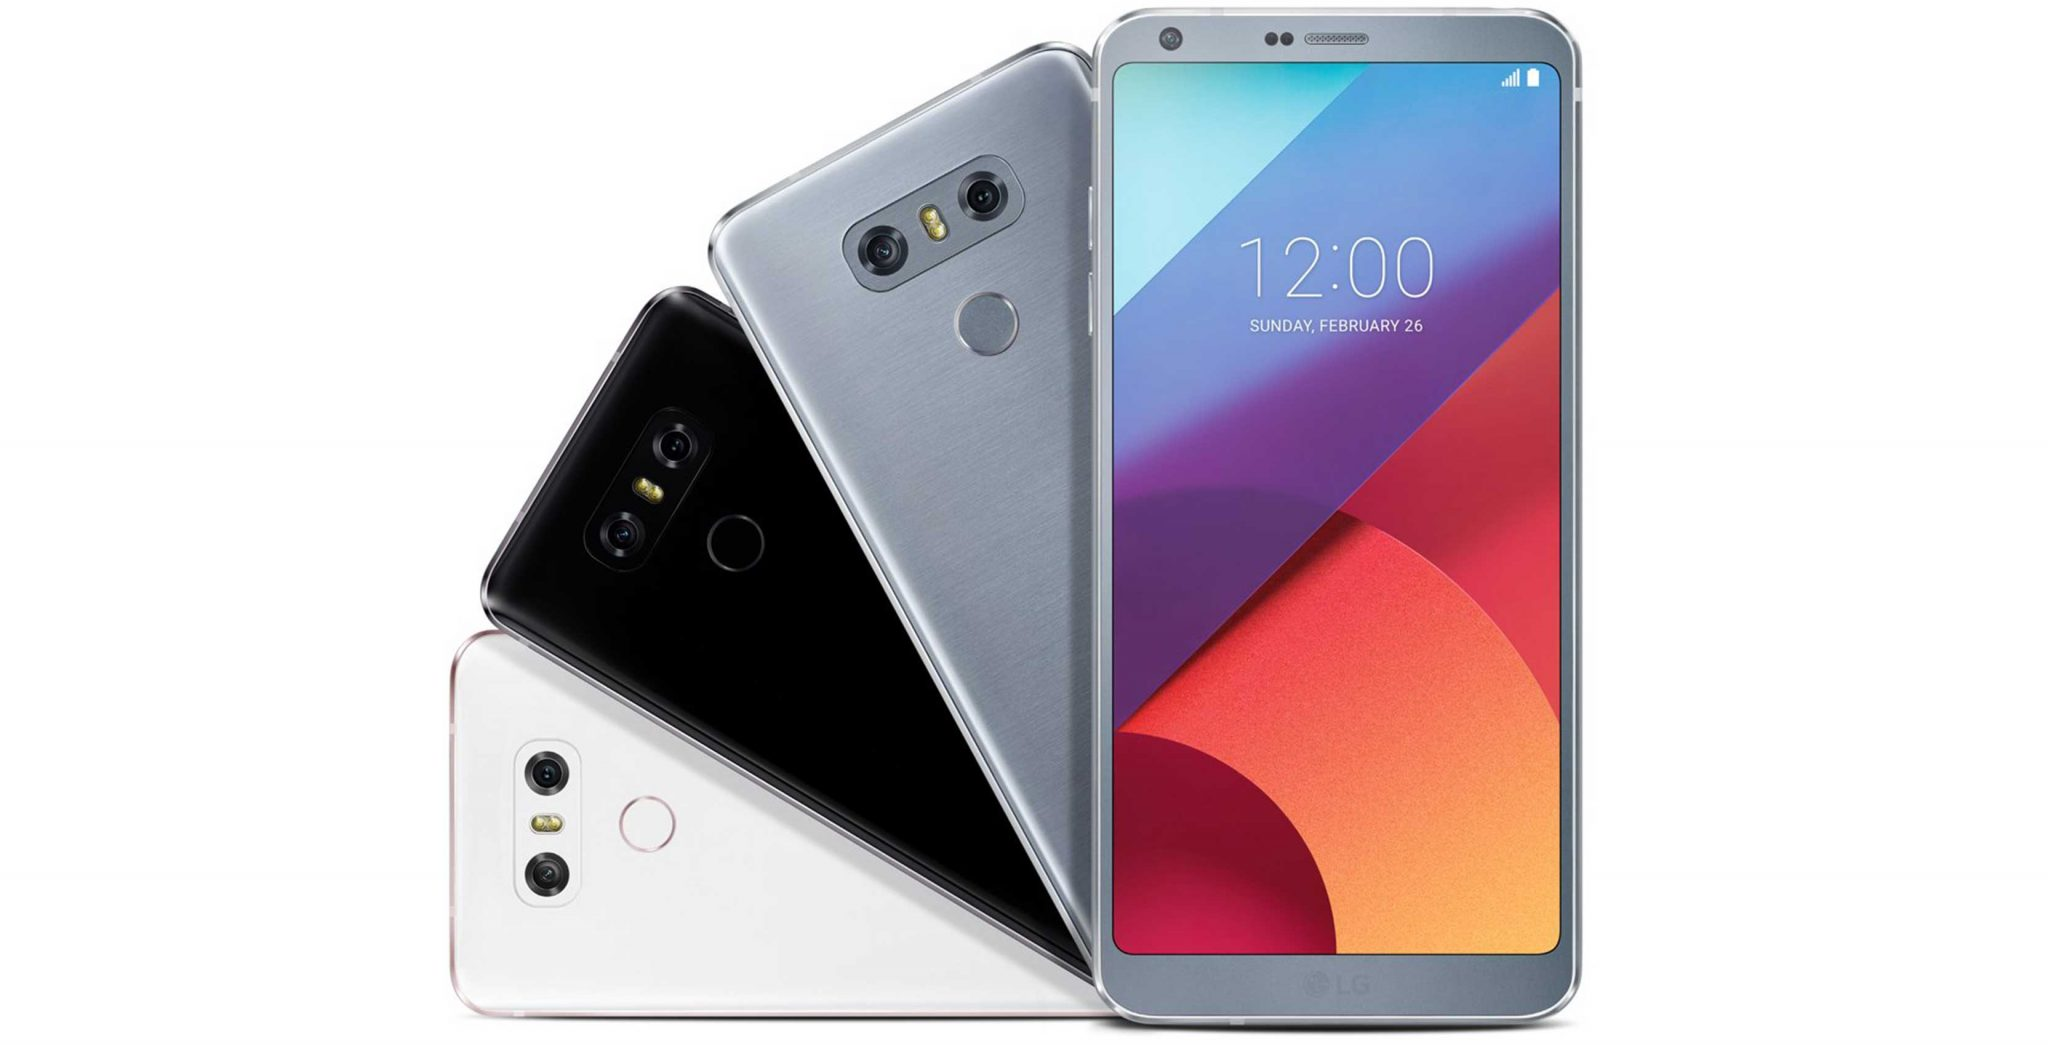 LG G6 To Be Launched in India On Monday